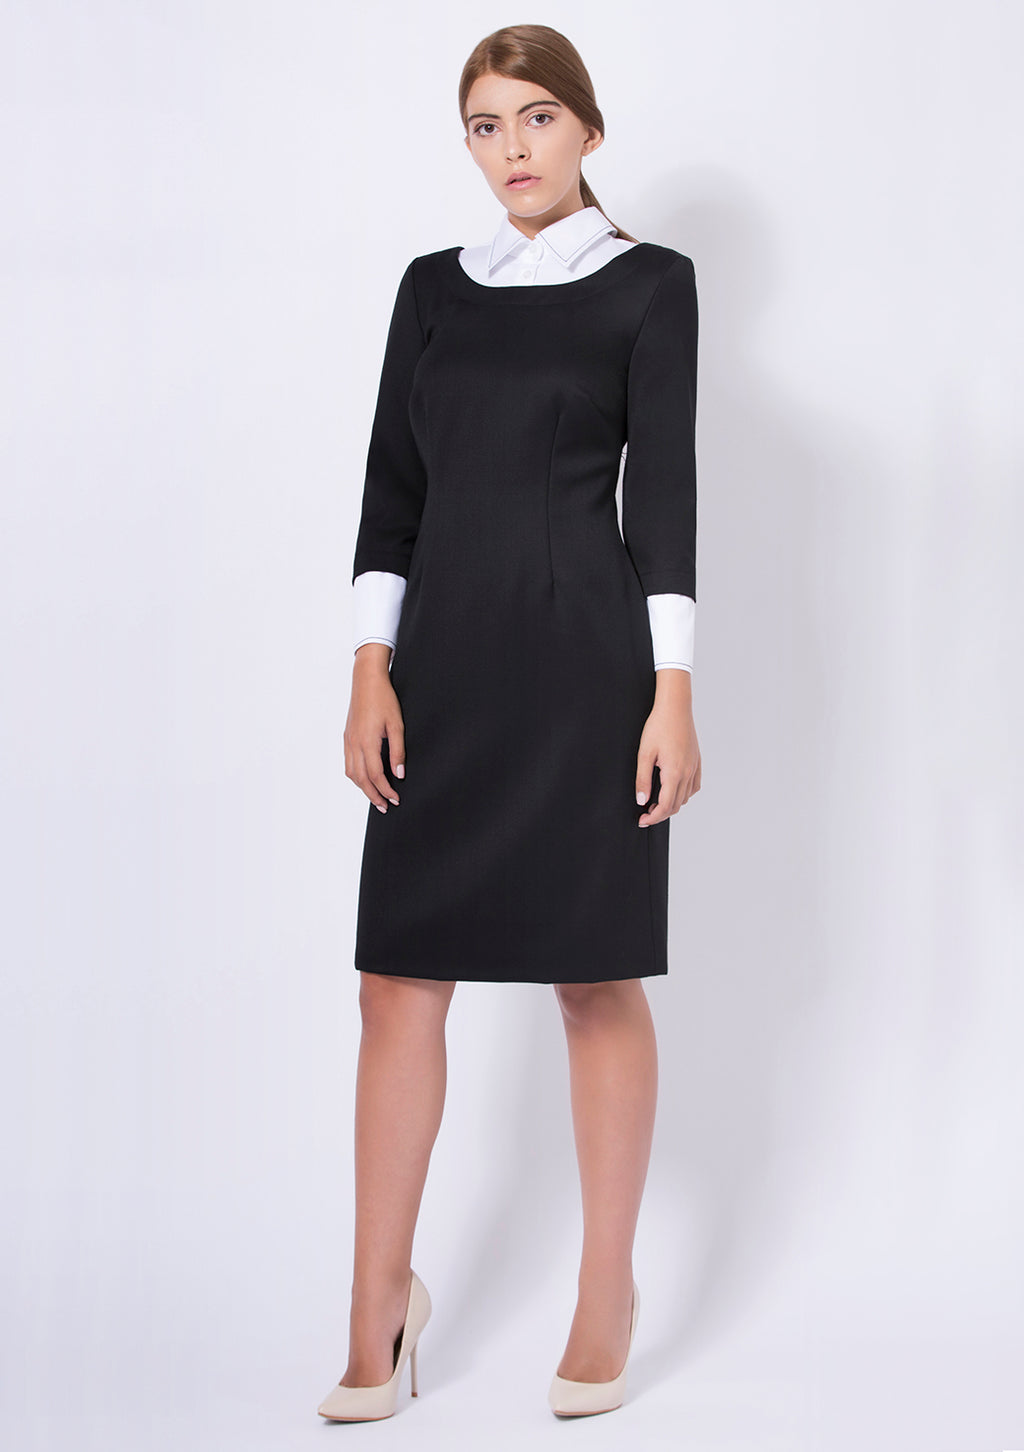 Heaton - elegant black dress